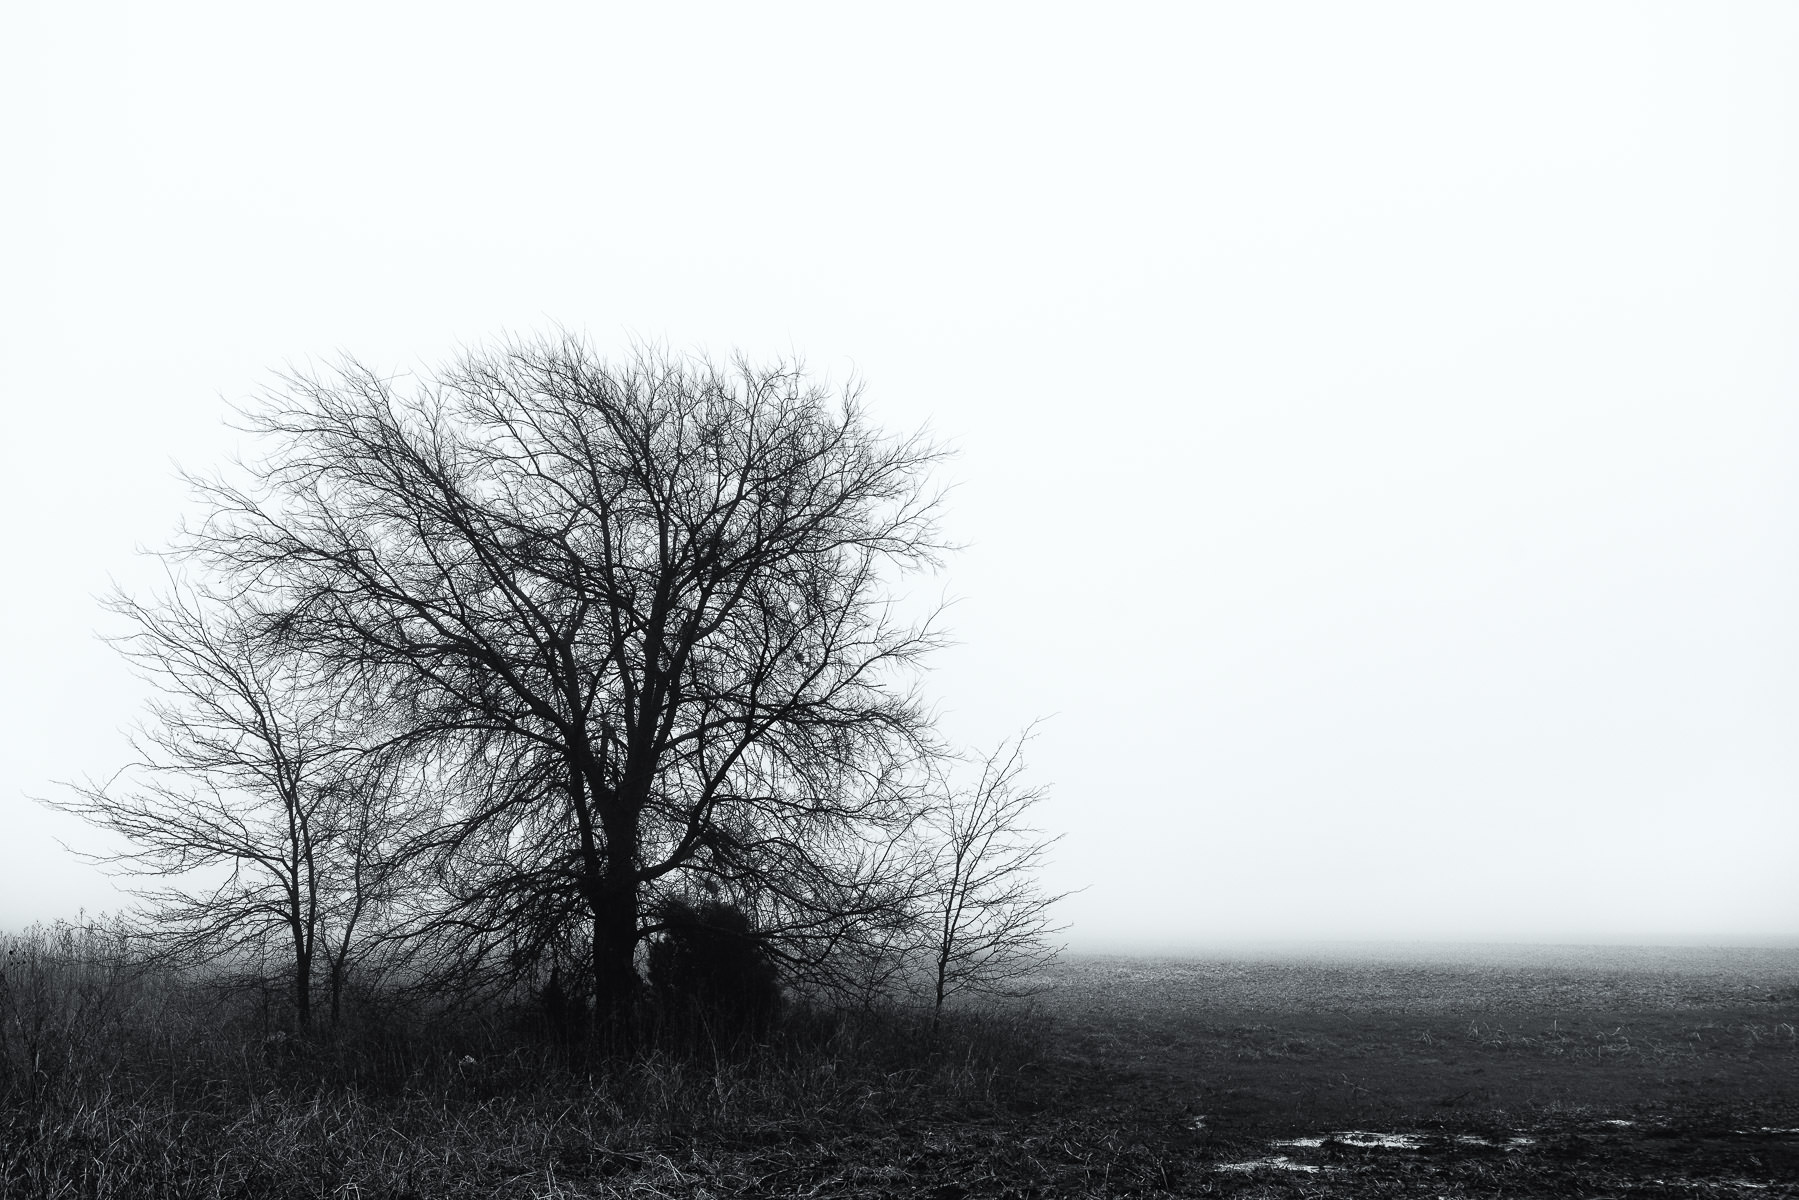 A tree grows in a foggy landscape on the outskirts of McKinney, Texas.